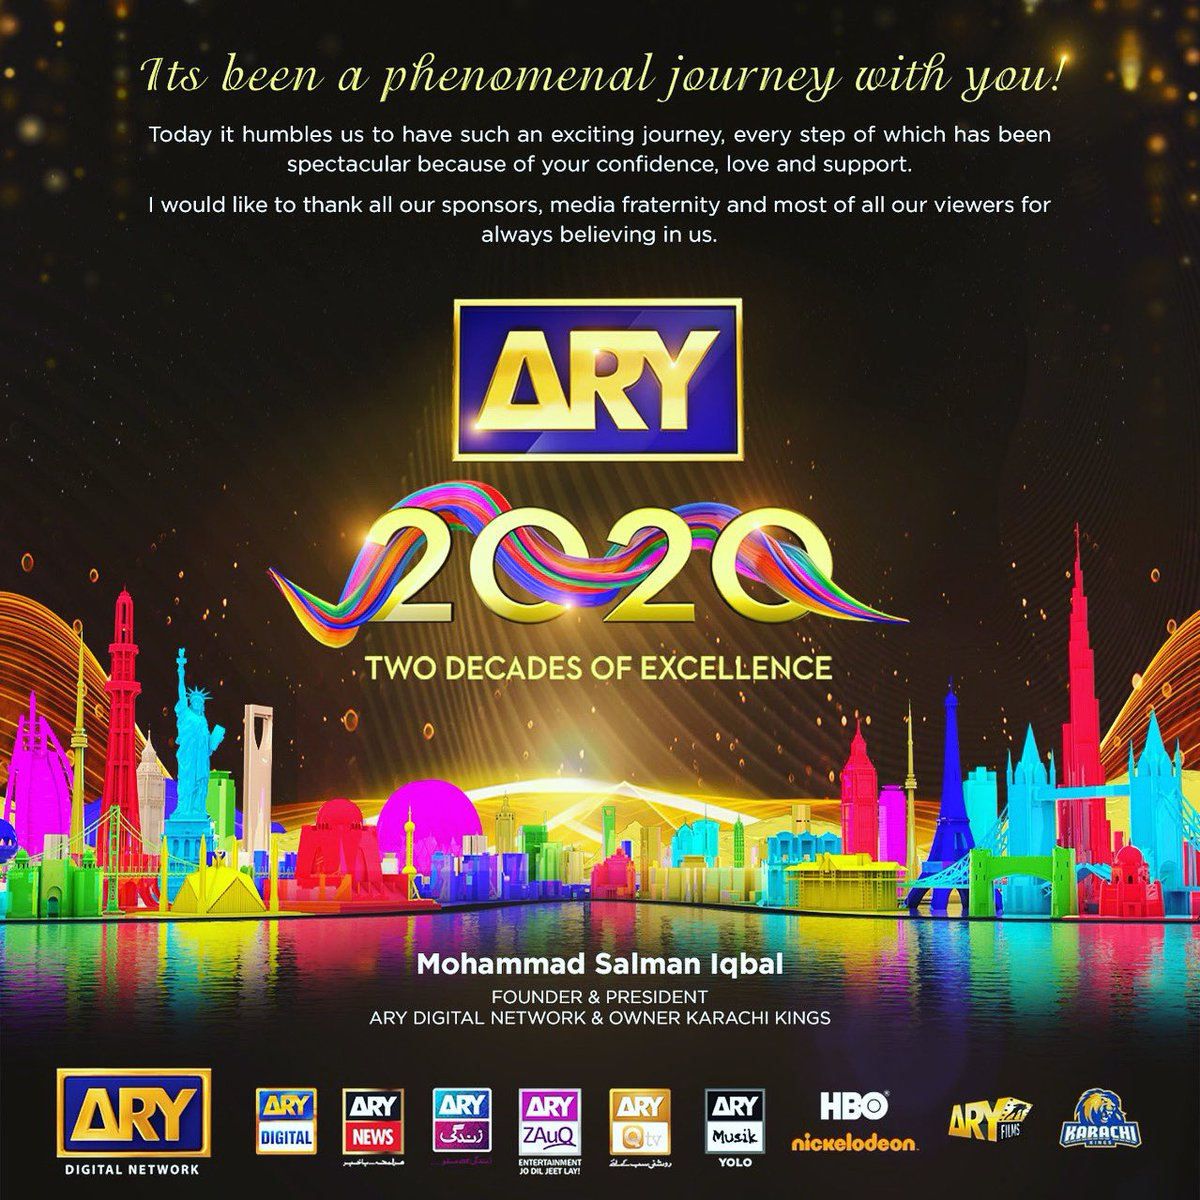 Congrats to the entire team at #arydigitalnetwork , to my viewers and my entire family who stood by US in this amazing journey.20 years just passed by.We learnt a lot in this journey and pray to Allah that we keep serving our country as we have for the last 20 years. Love you all https://t.co/NrlXRYgLwt